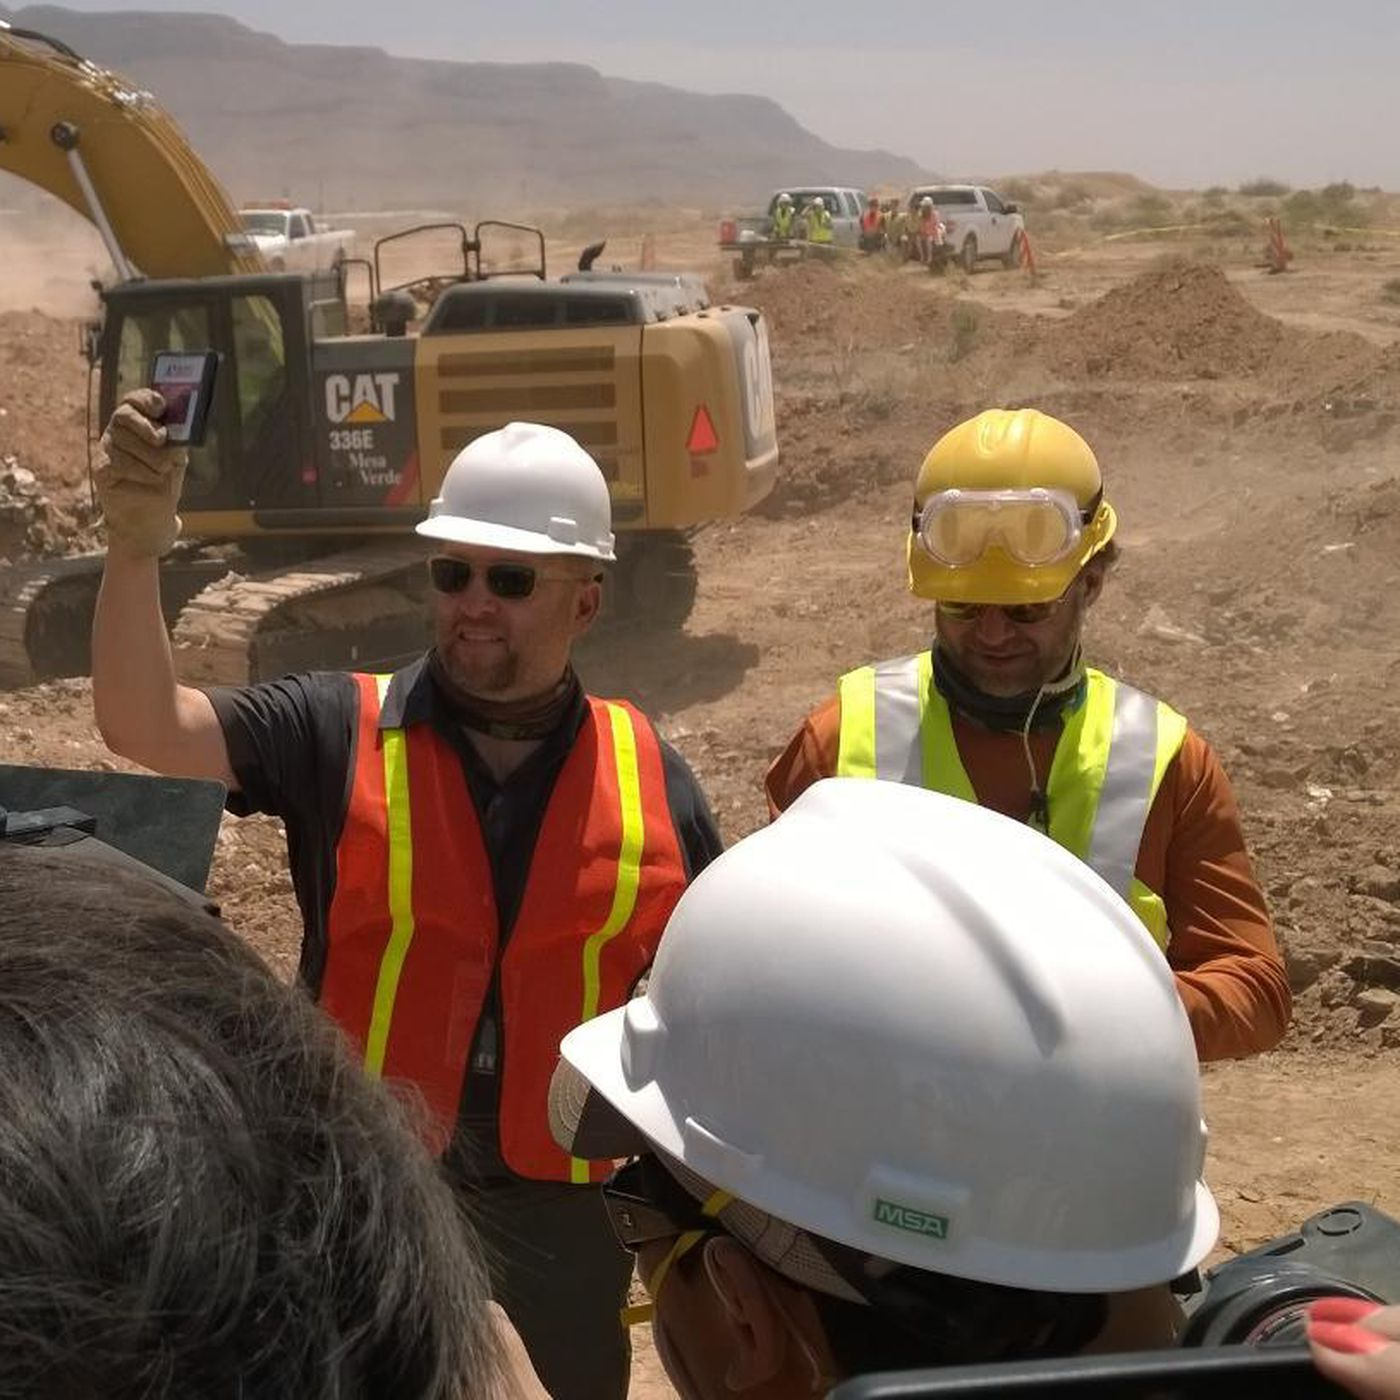 Construction workers unearth legendary cache of Atari games